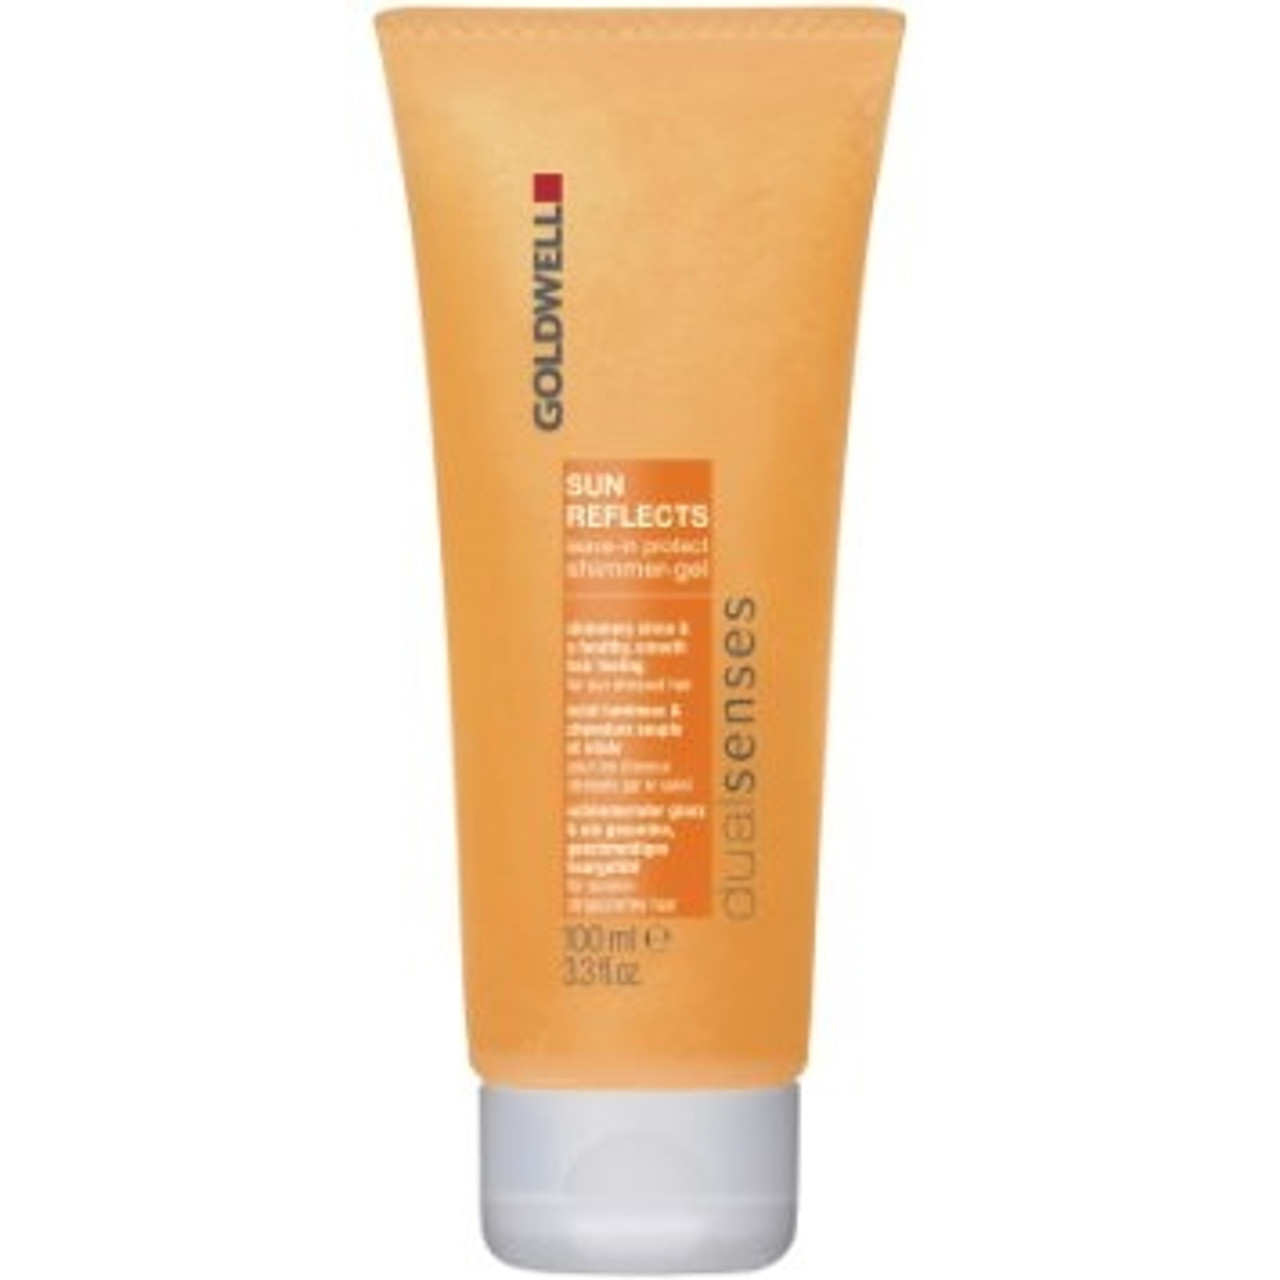 Goldwell Dualsenses Sun Reflects Leave-in Protect Shimmer Gel 3.3oz